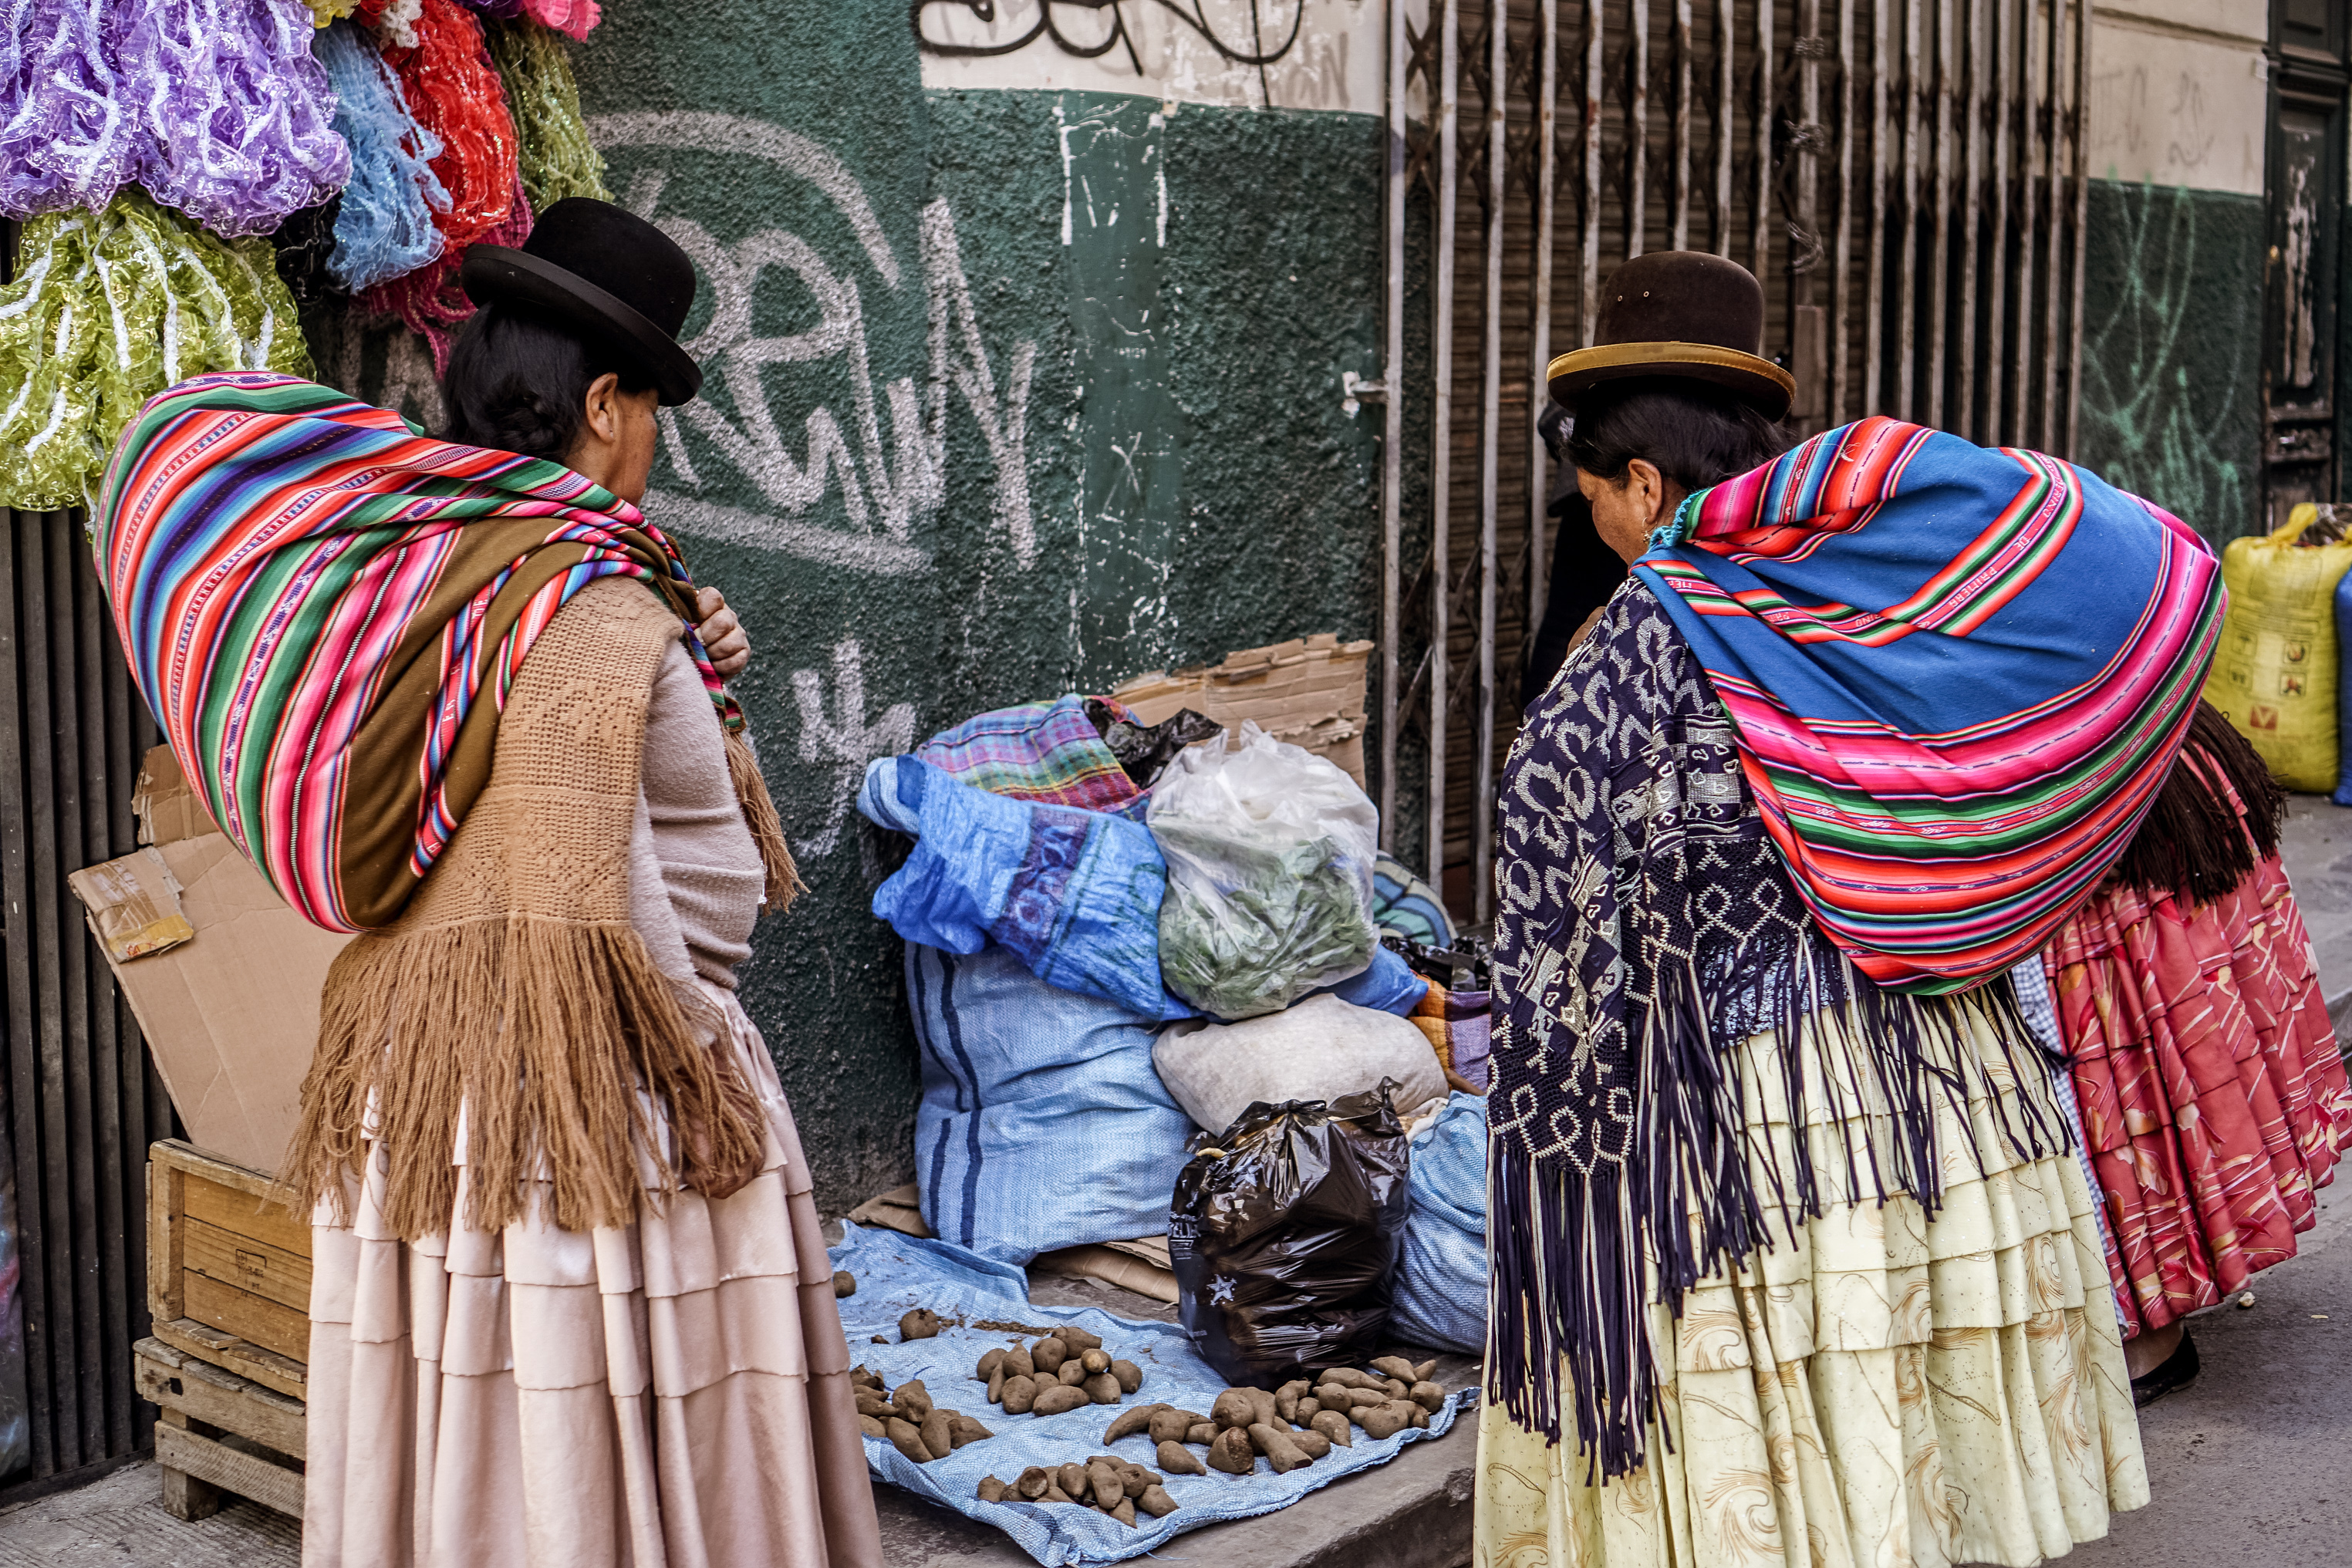 Native women in traditional dress in the market